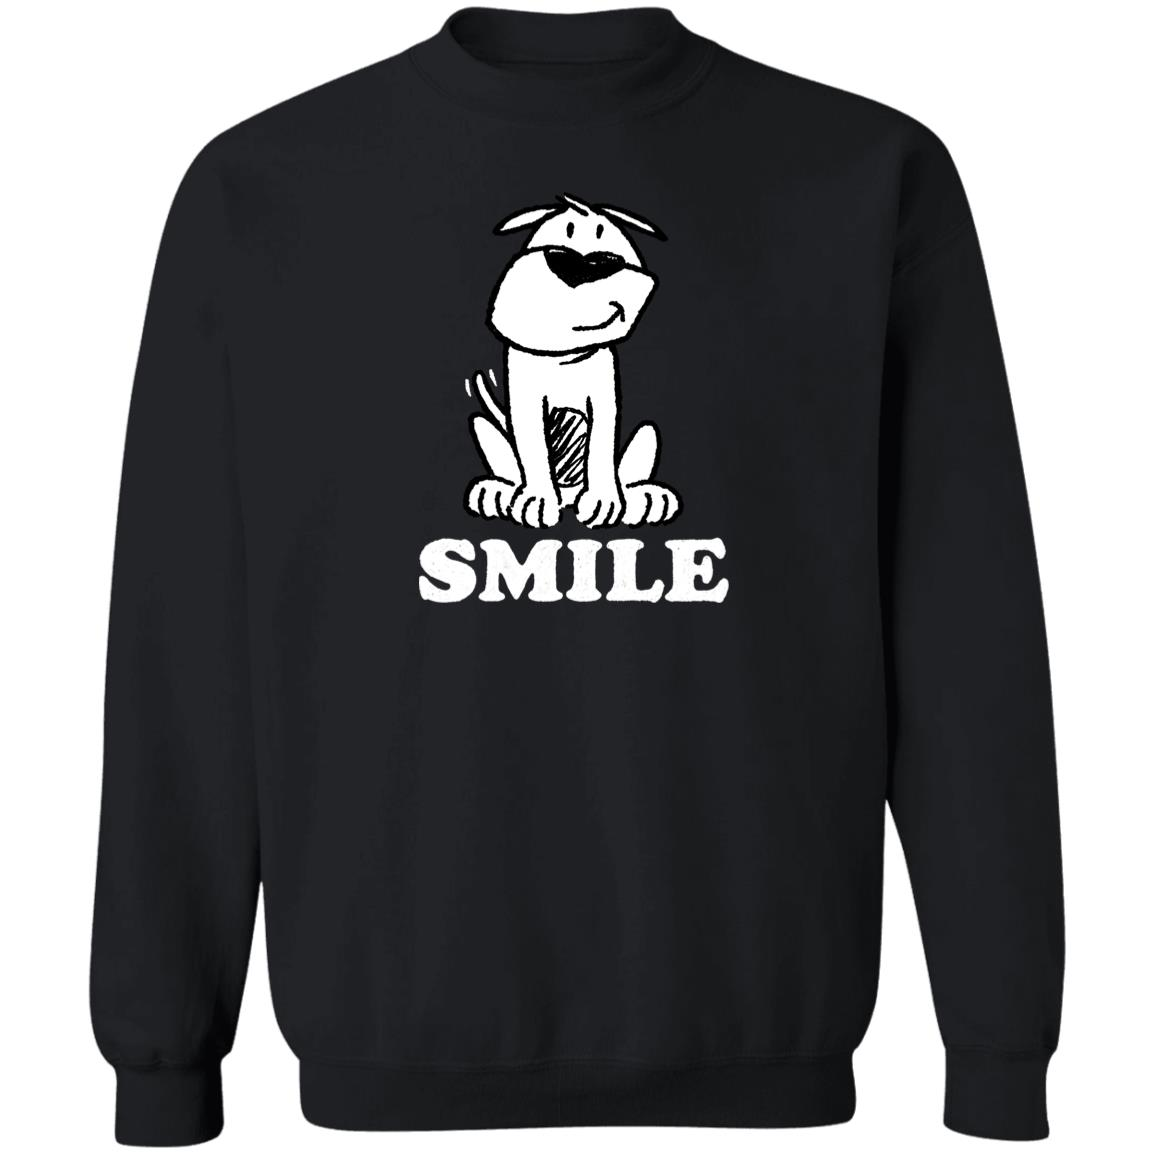 Smile ResQ - Black Sweatshirt 🐾  Deal Up To 25% Off!